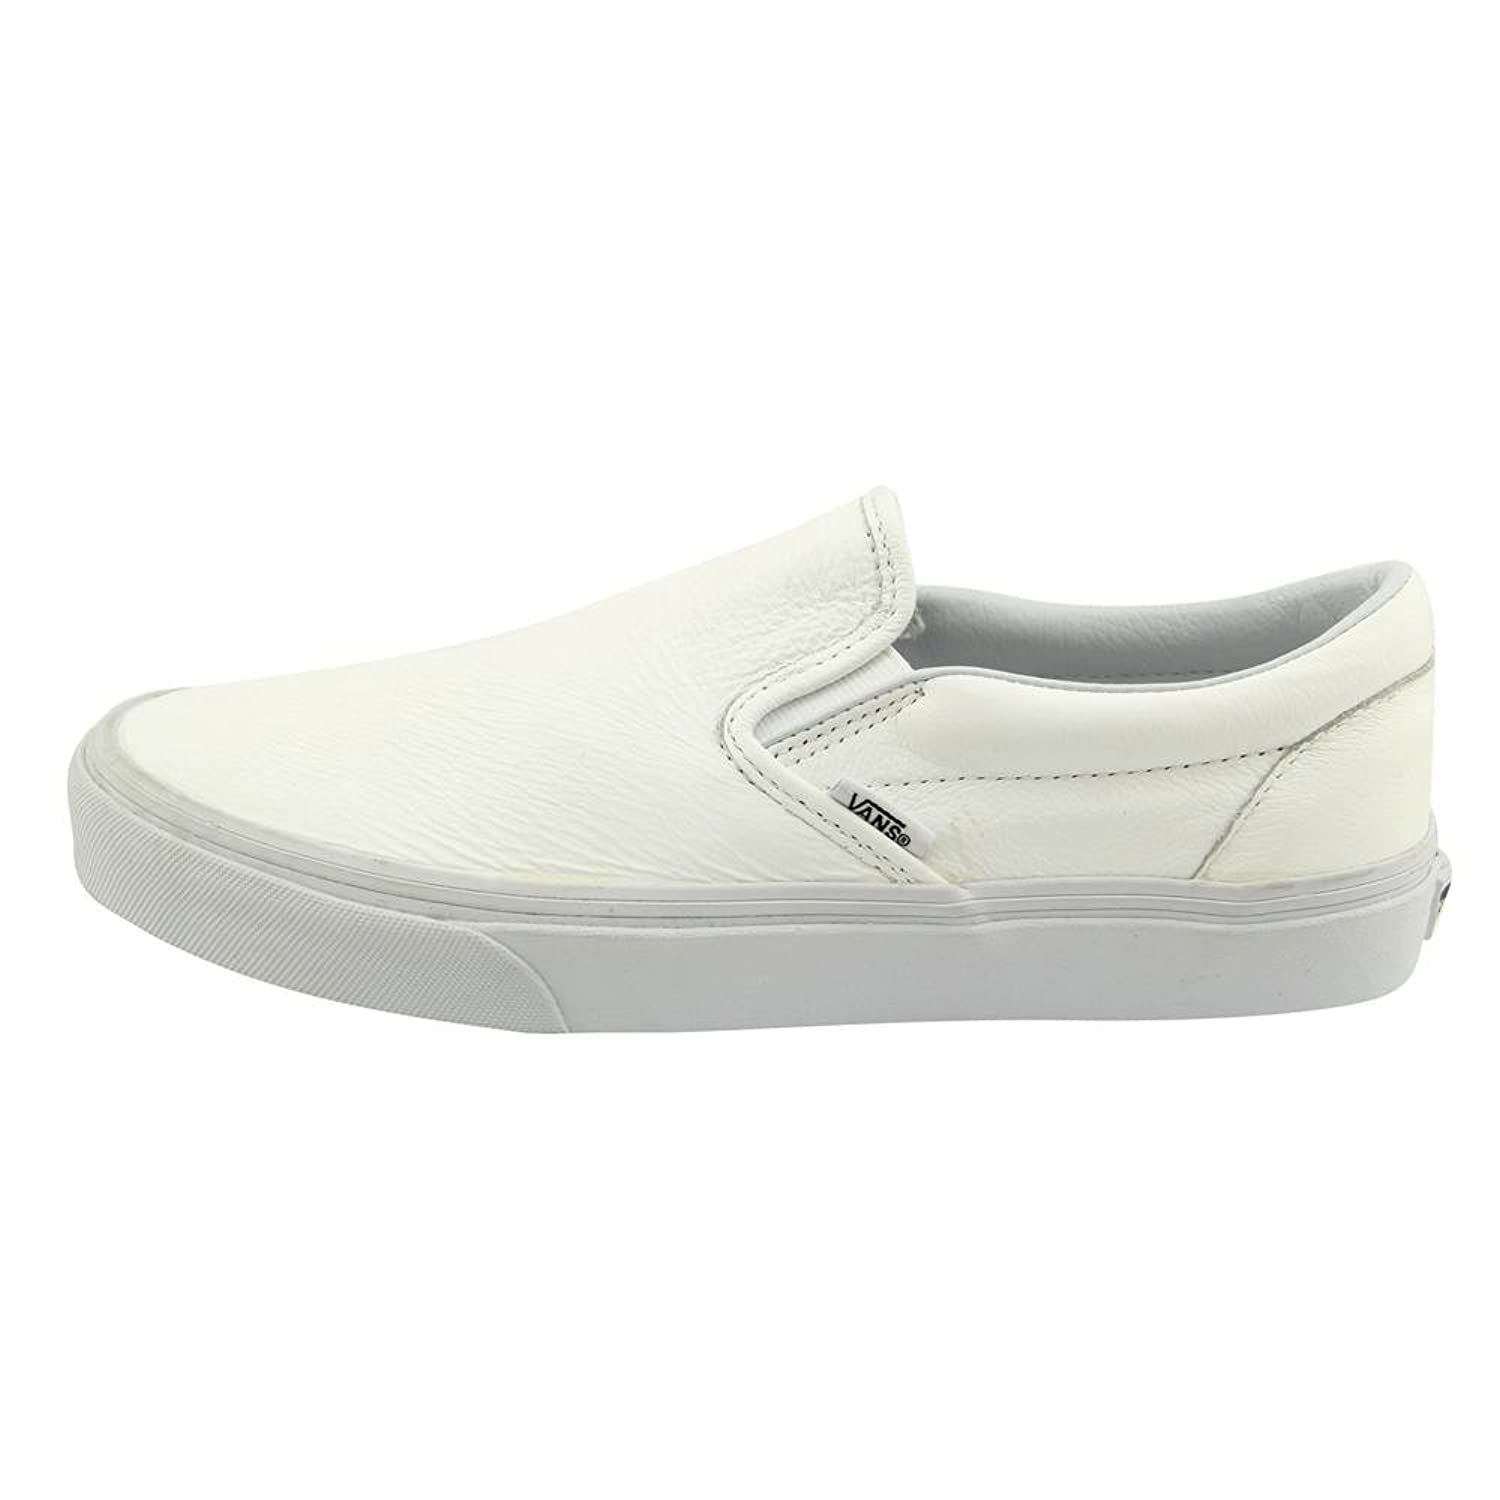 vans leather slip on shoes